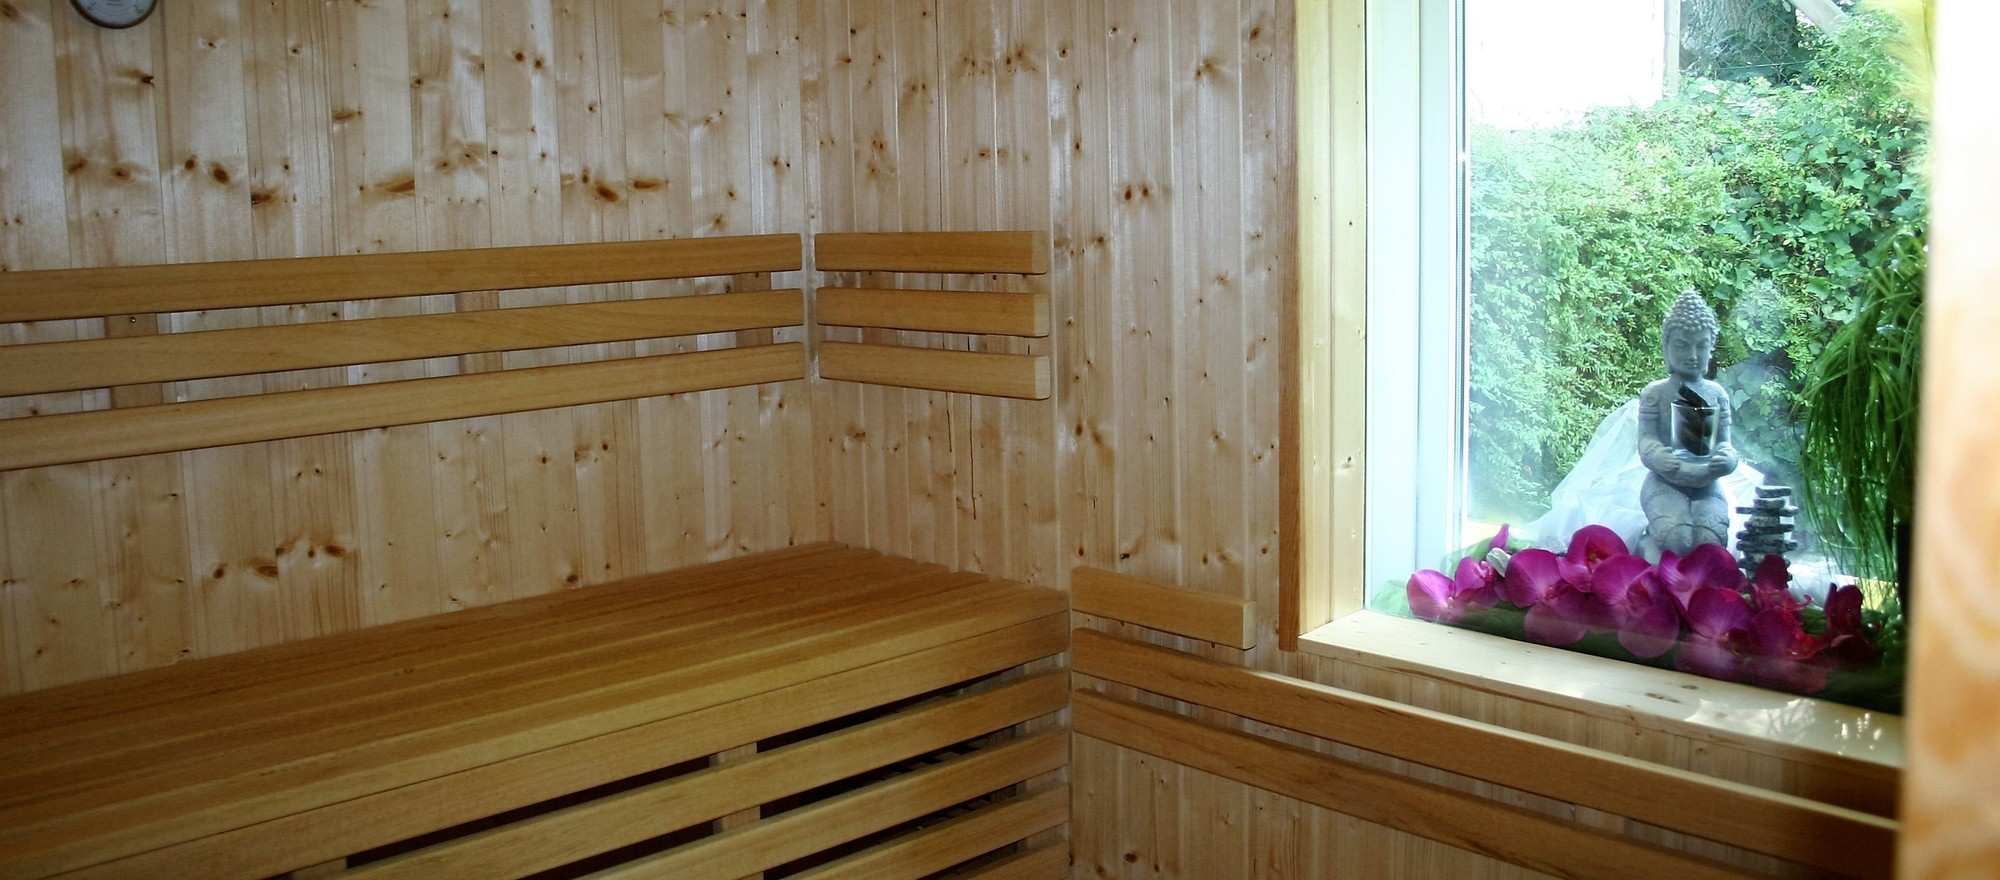 Relax in the sauna of the 4-star hotel Ringhotel Villa Margarete in Waren